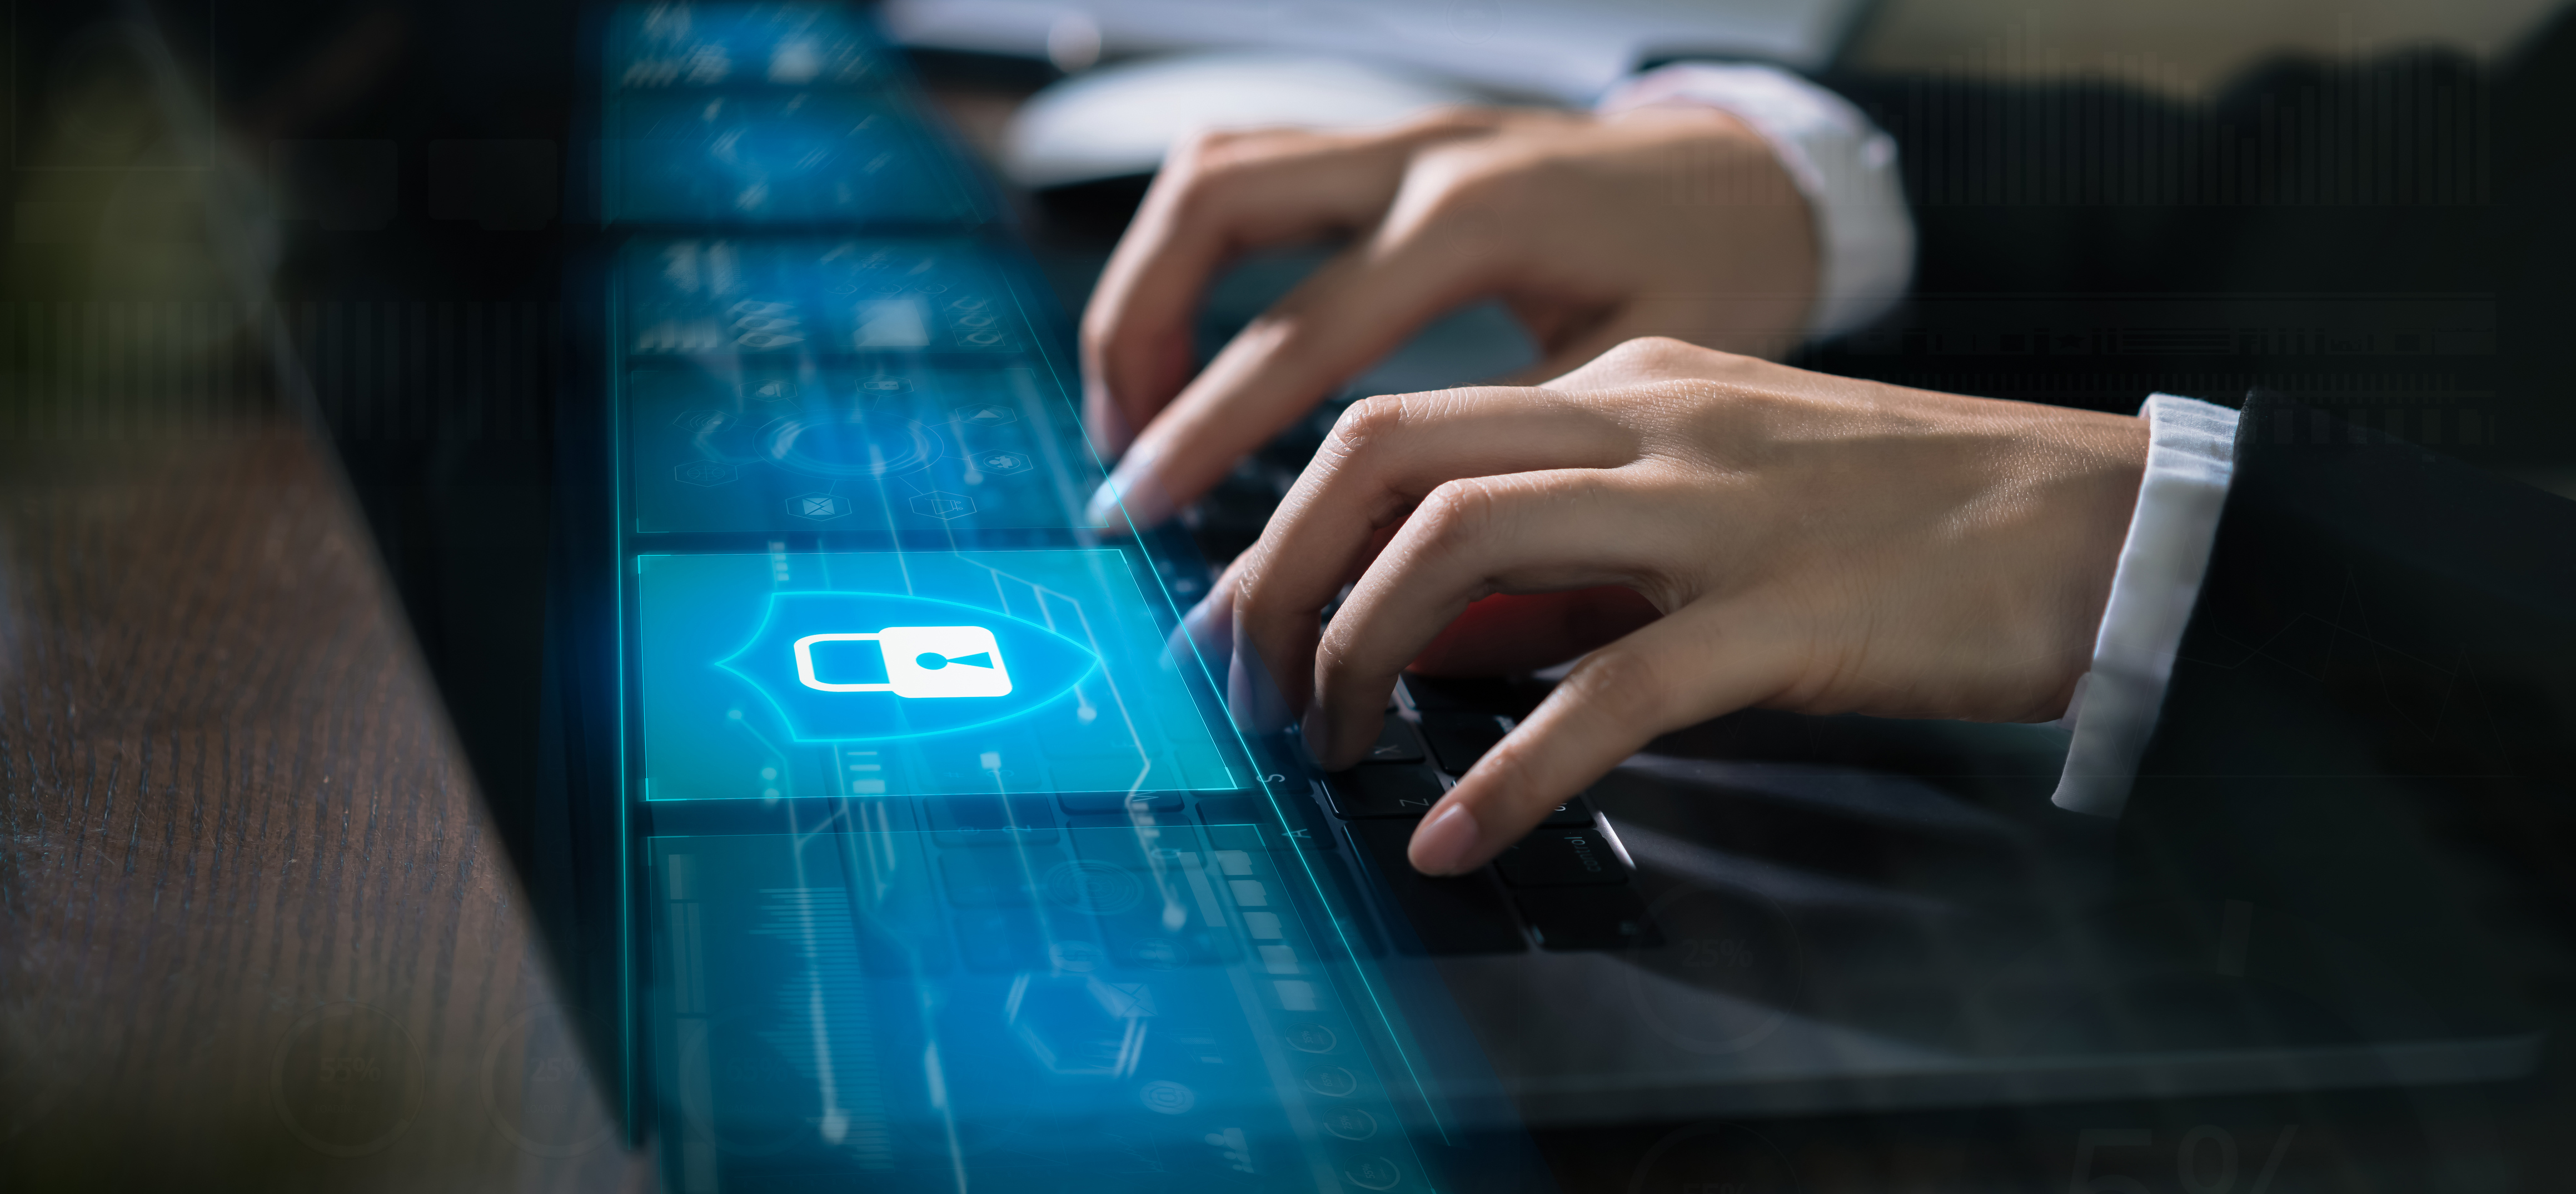 Technology concept with cyber security internet and networking, Businessman hand working on laptop, screen padlock icon on digital display.